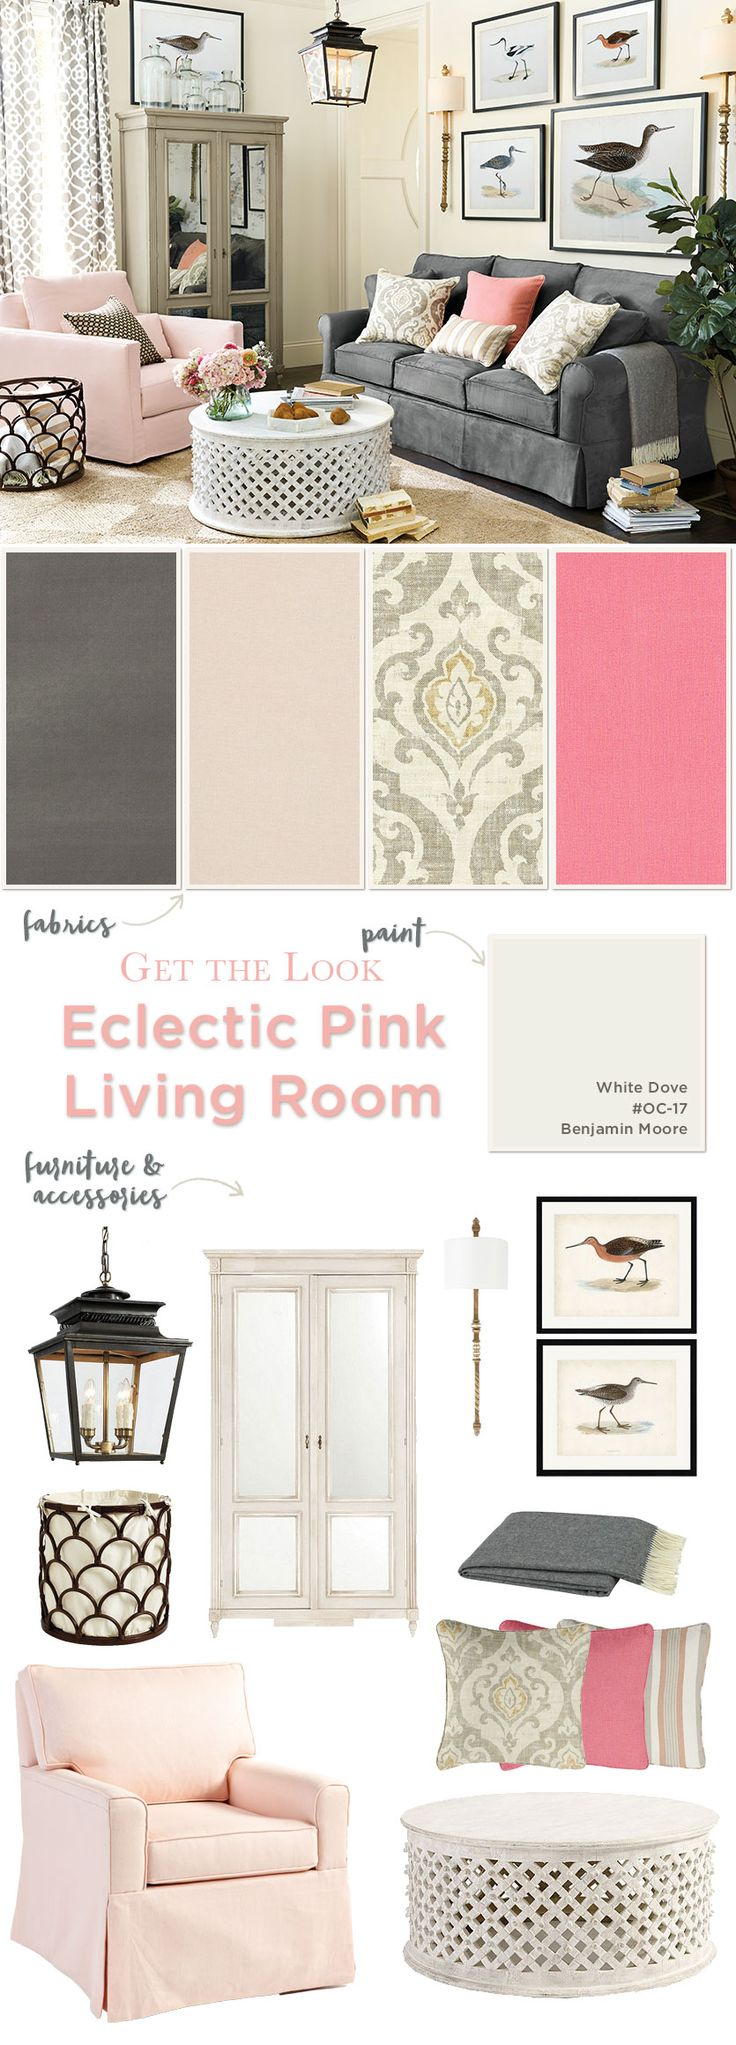 "Get the look of this eclectic living room with pink accents_Borneo coffee table_16""H X 36 1/4"" Diameter"